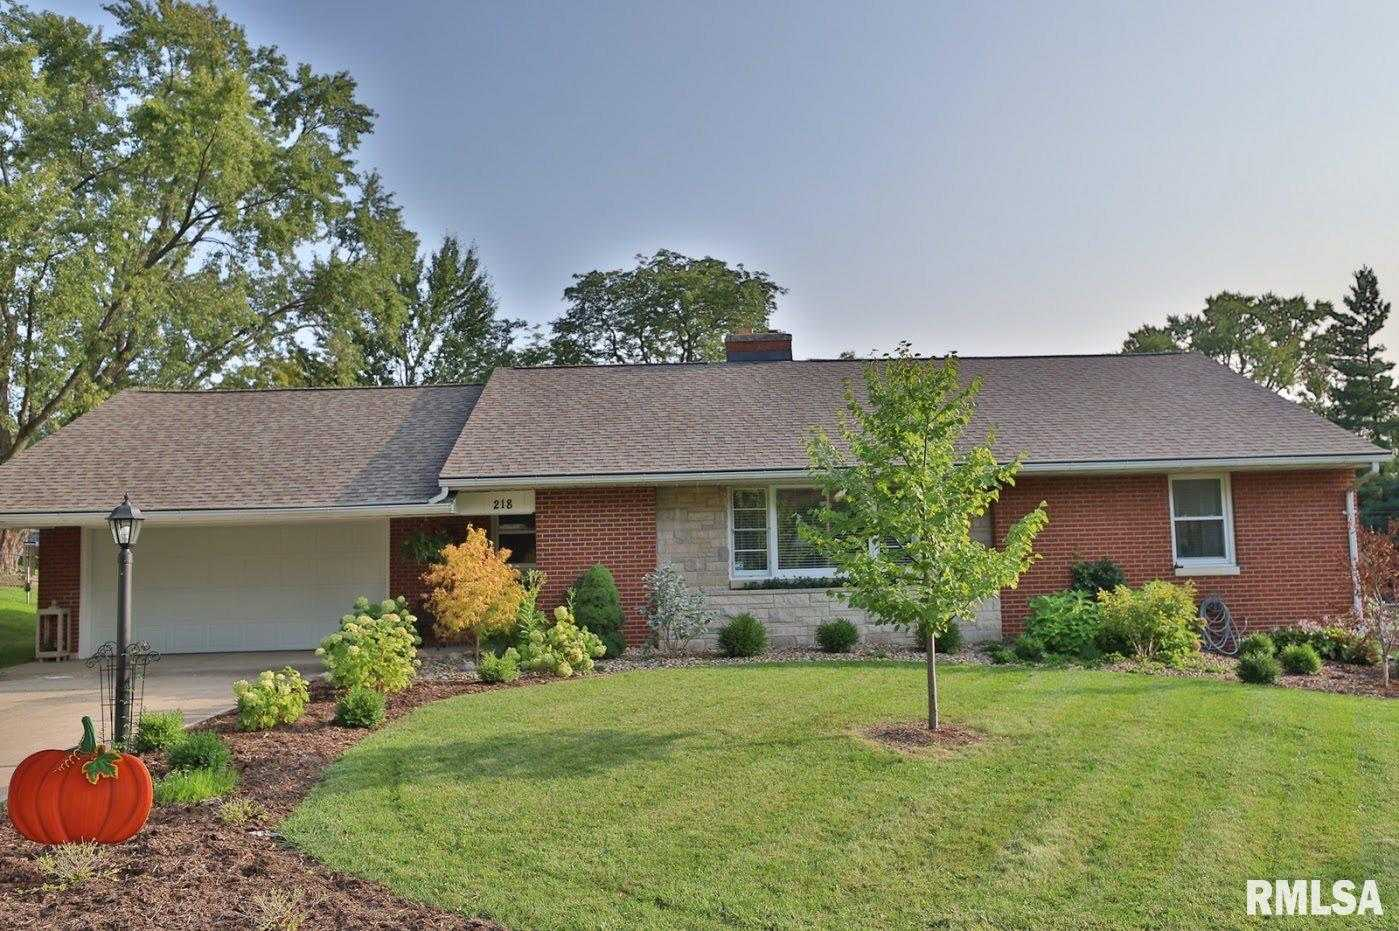 $185,000 - 3Br/2Ba -  for Sale in Knoll Crest, Peoria